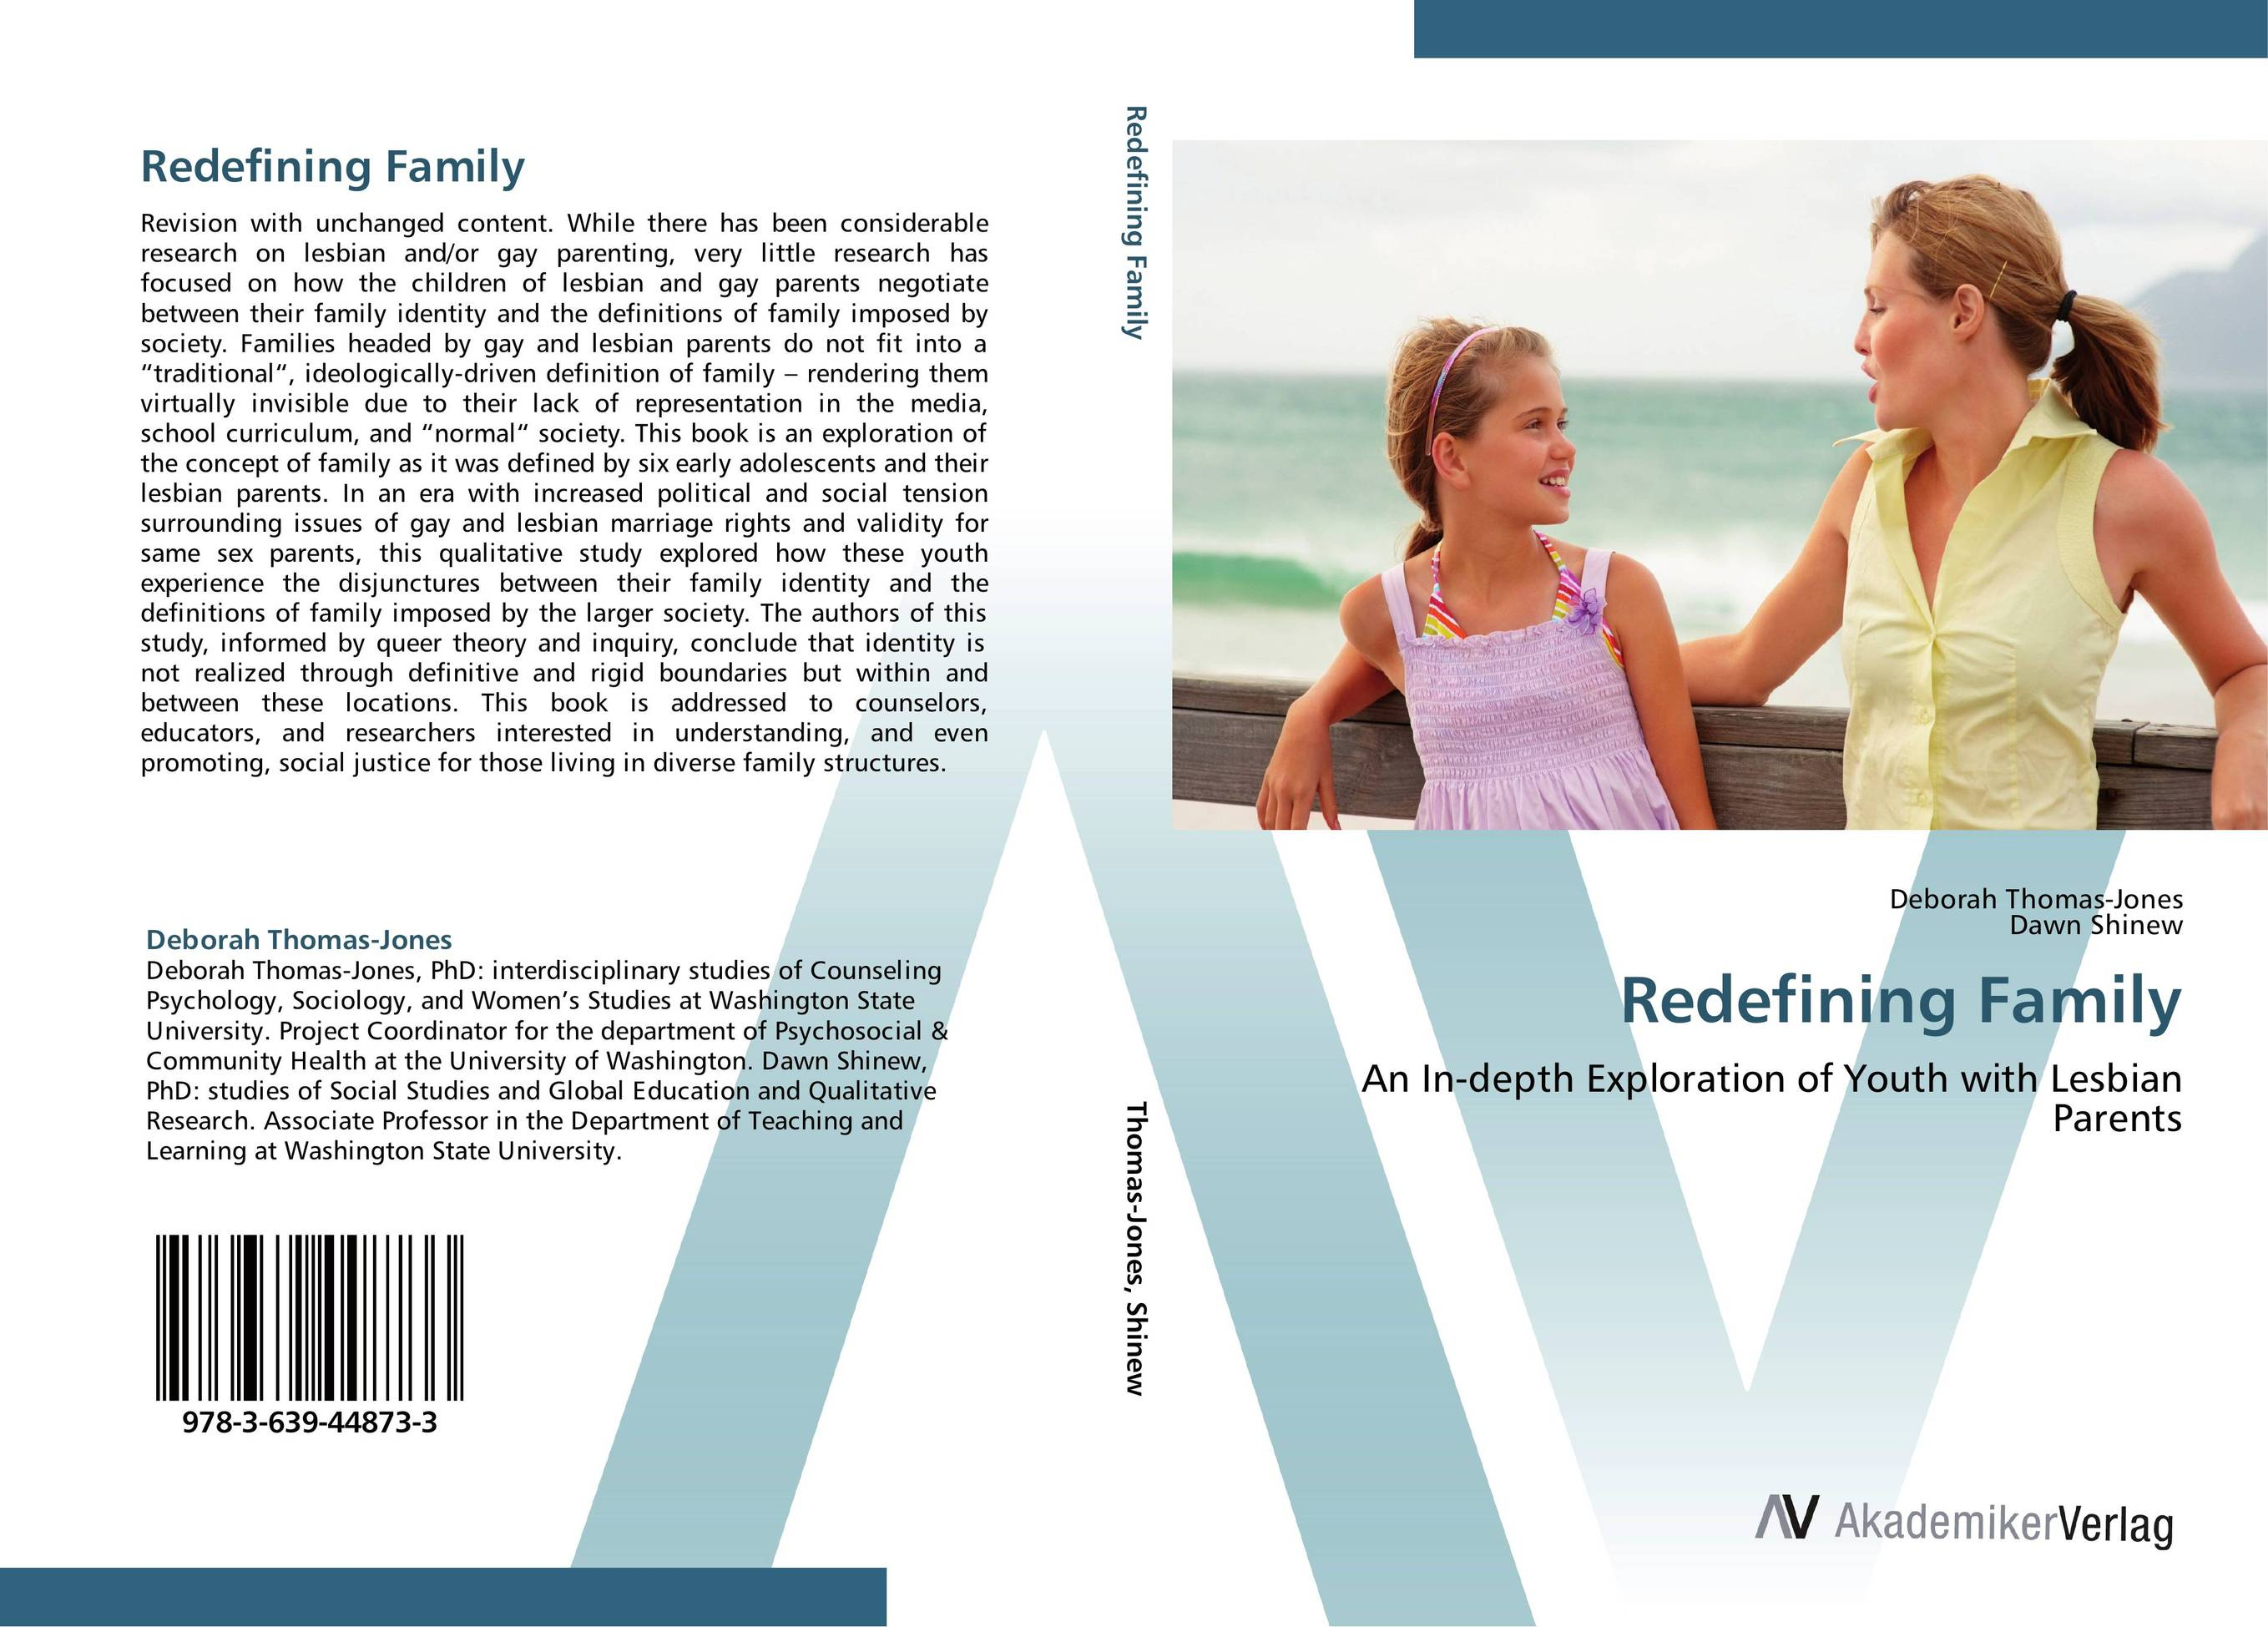 Redefining Family family caregiving in the new normal